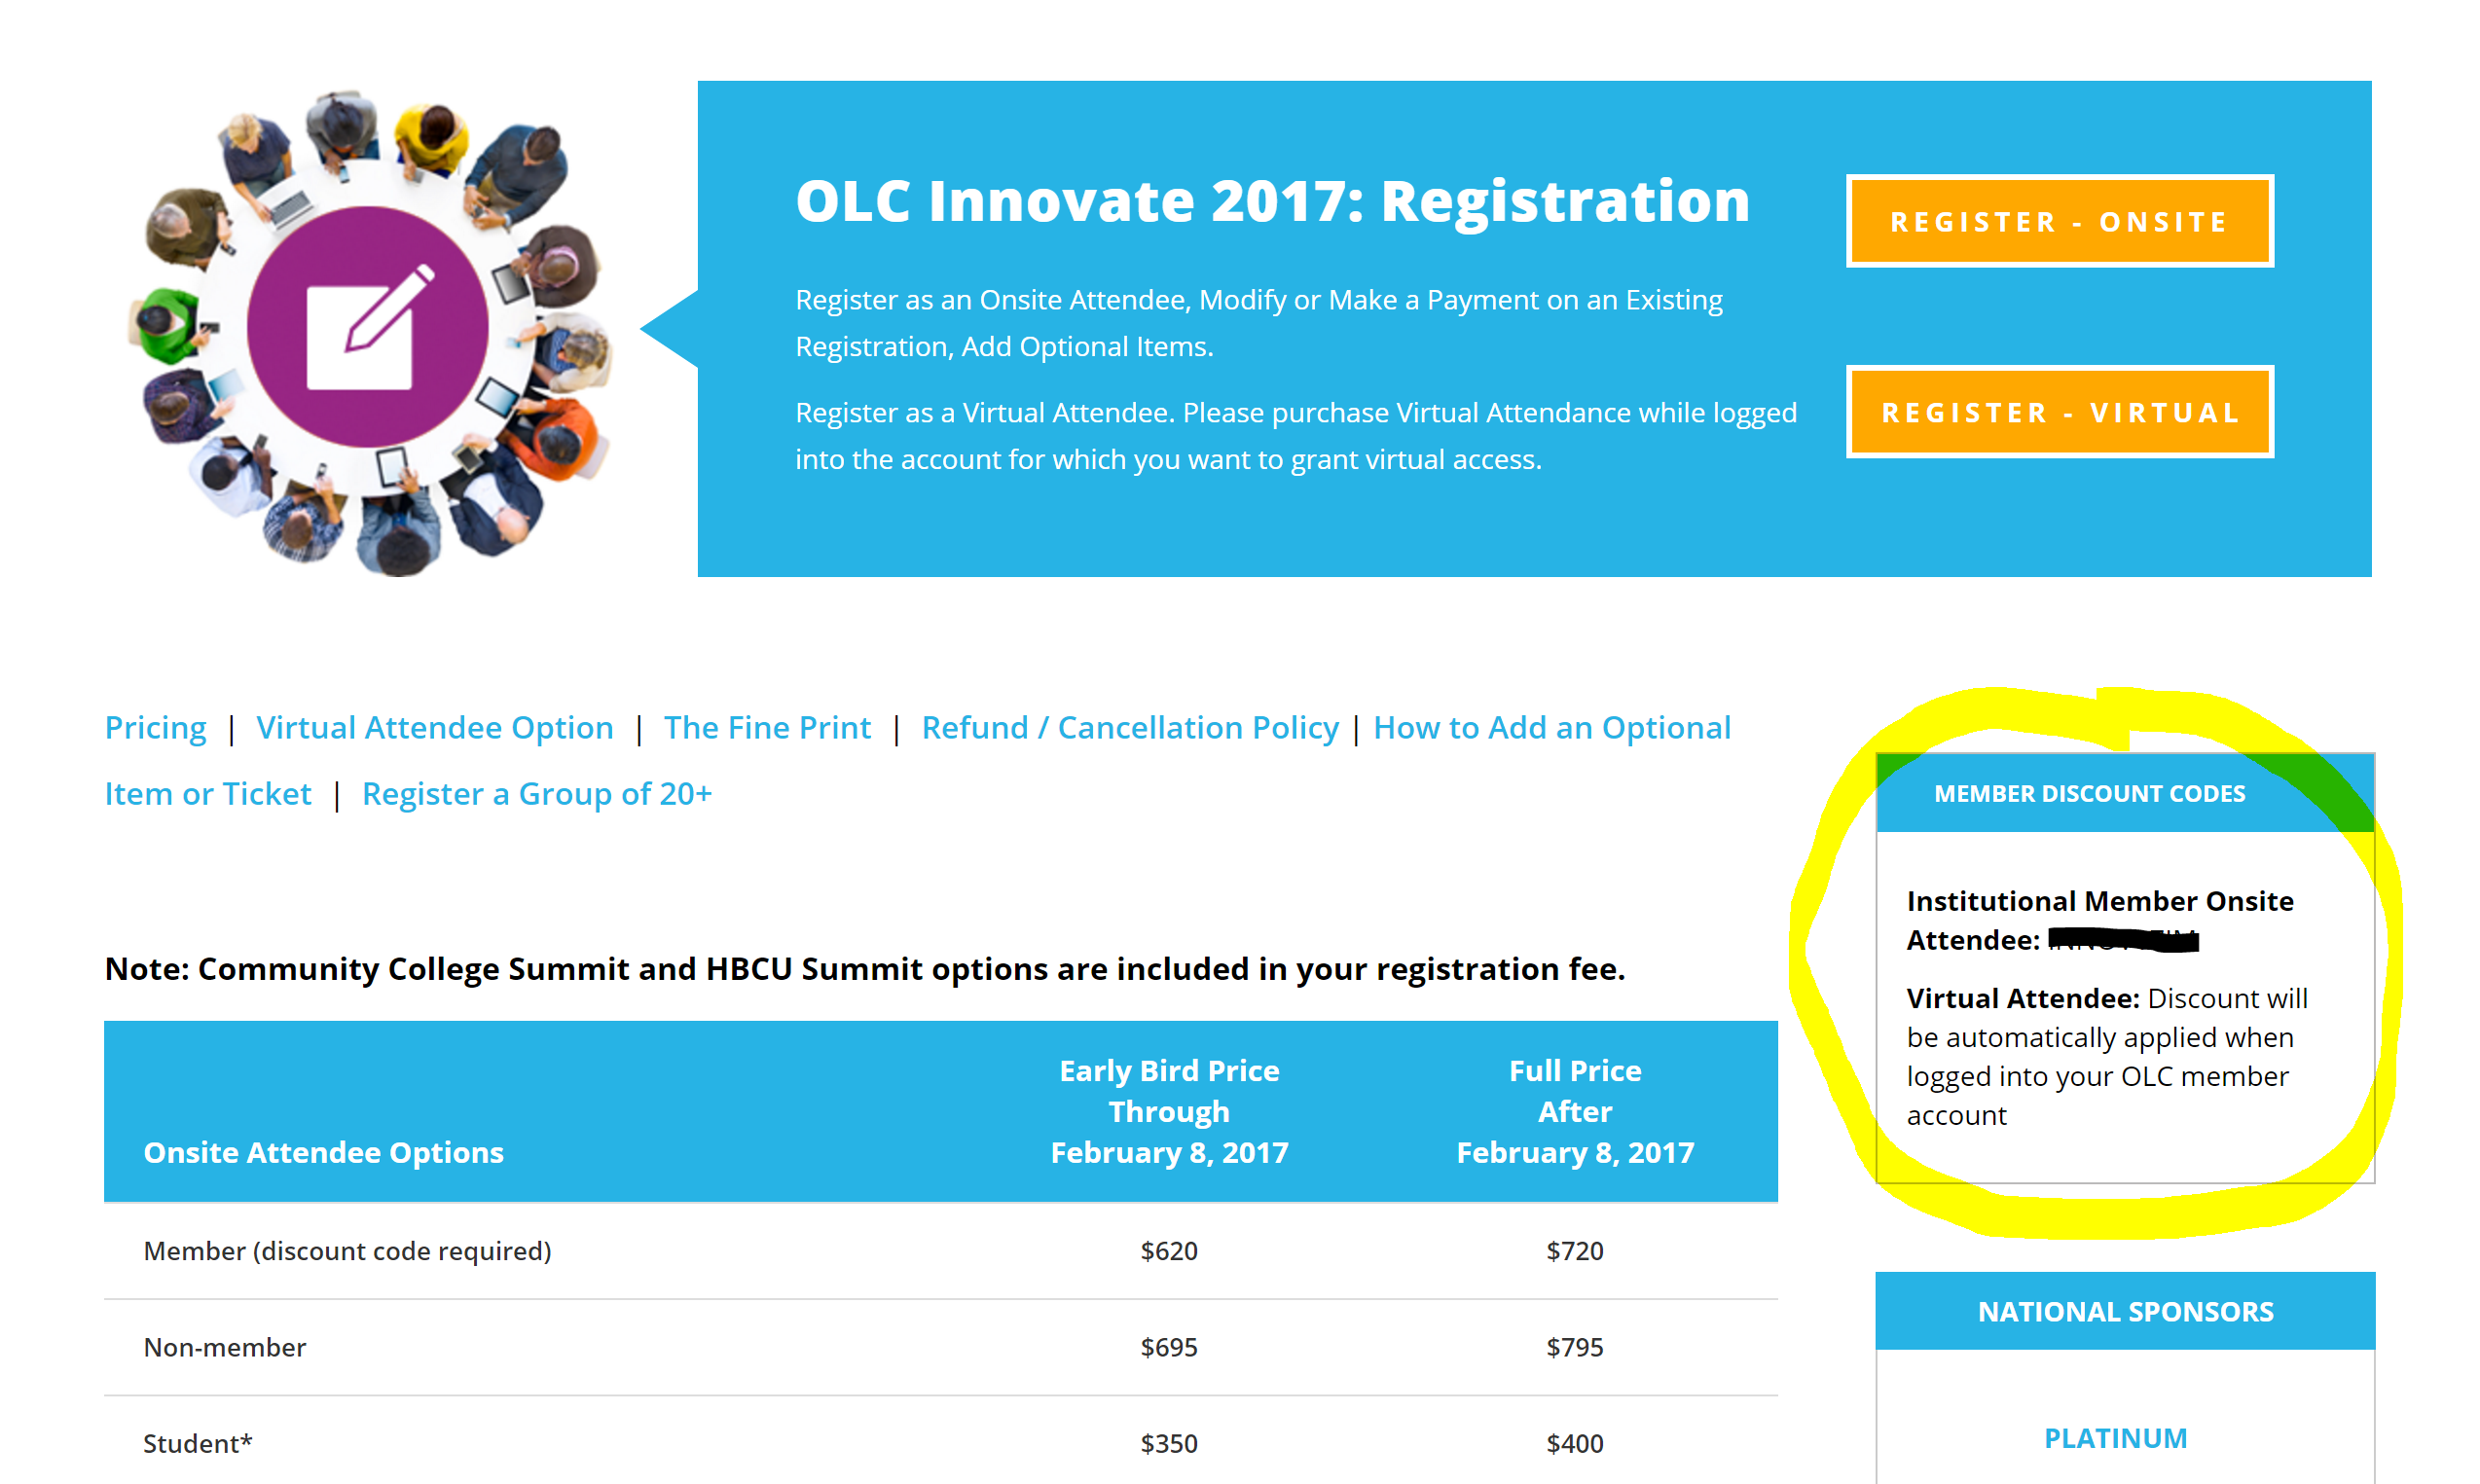 OLC Innovate 2017 - Member Discount Code Location